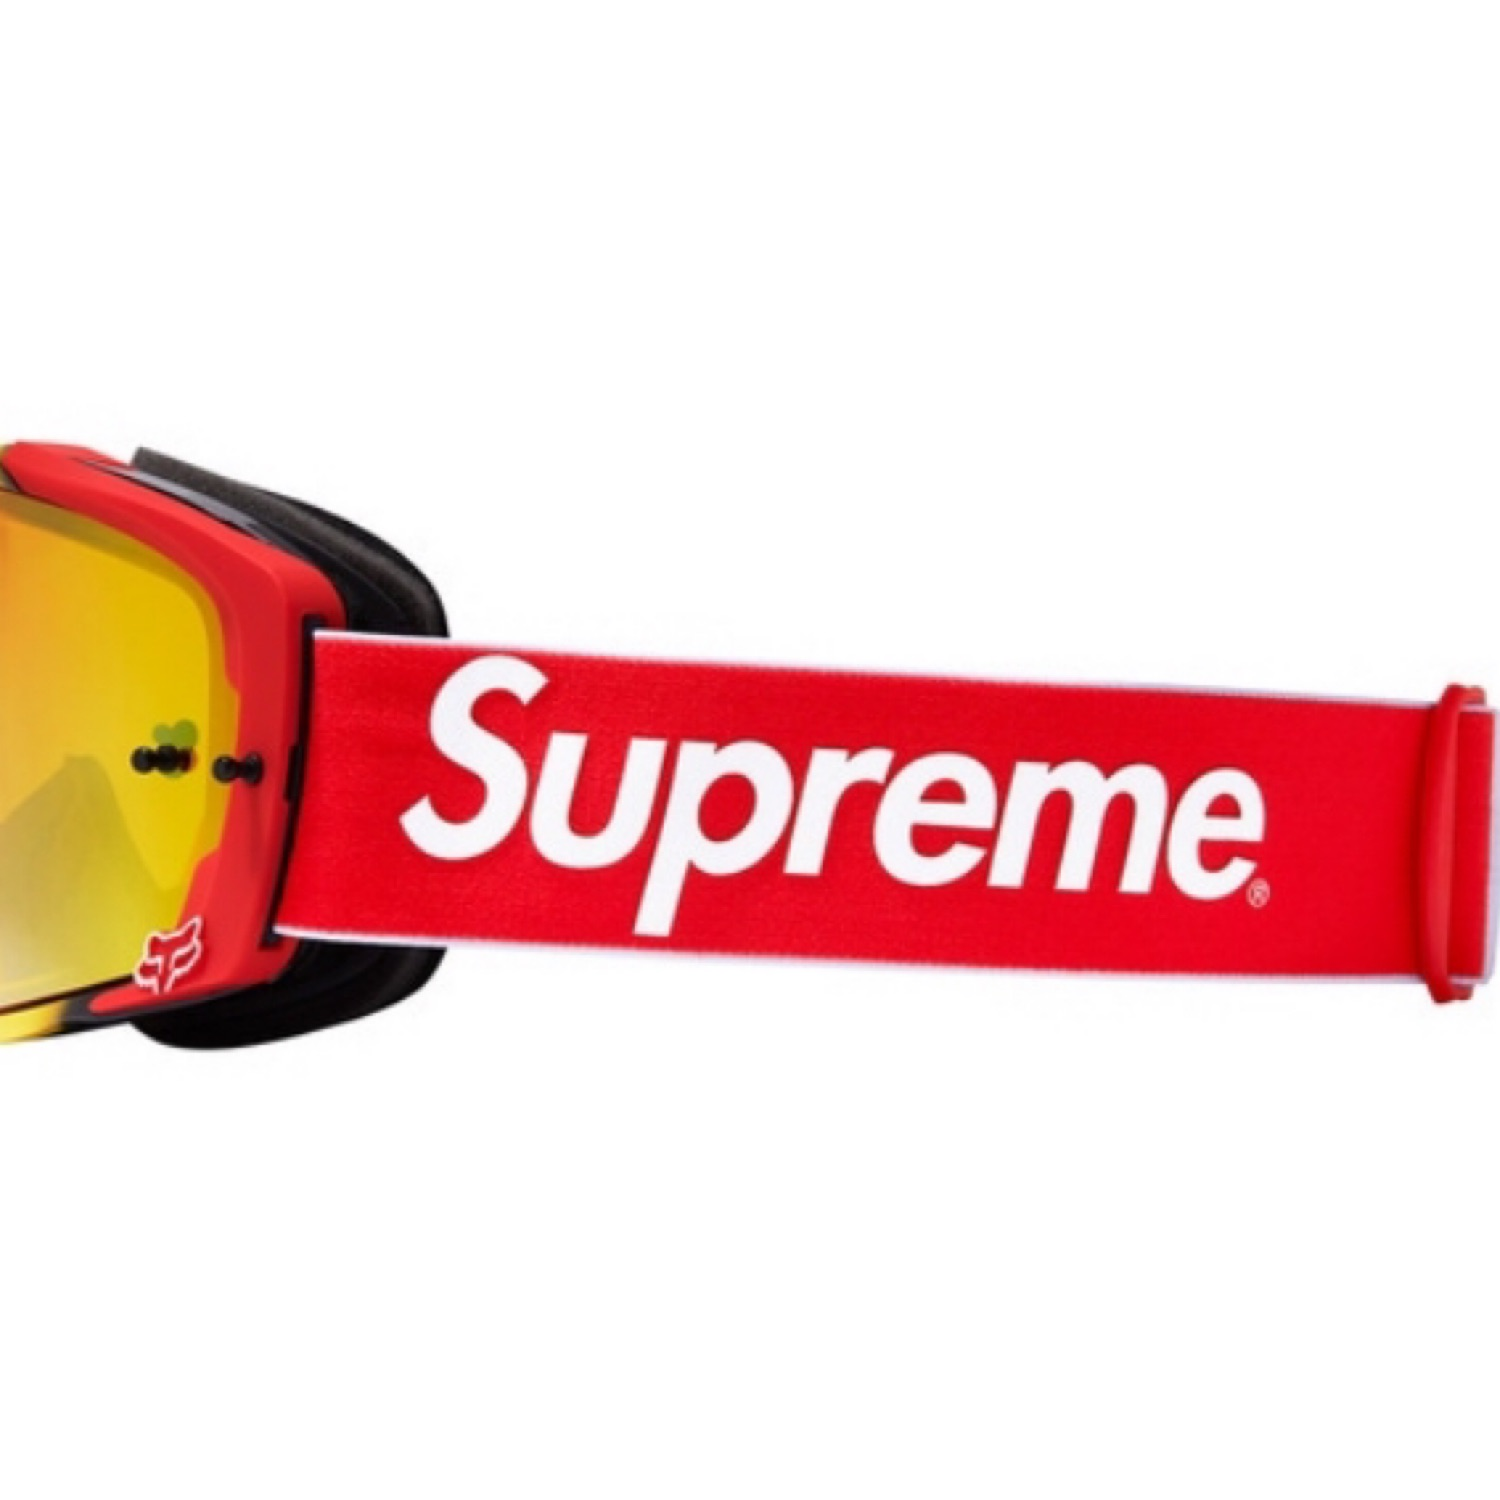 Supreme Honda Fox Racing Red Vue Goggles